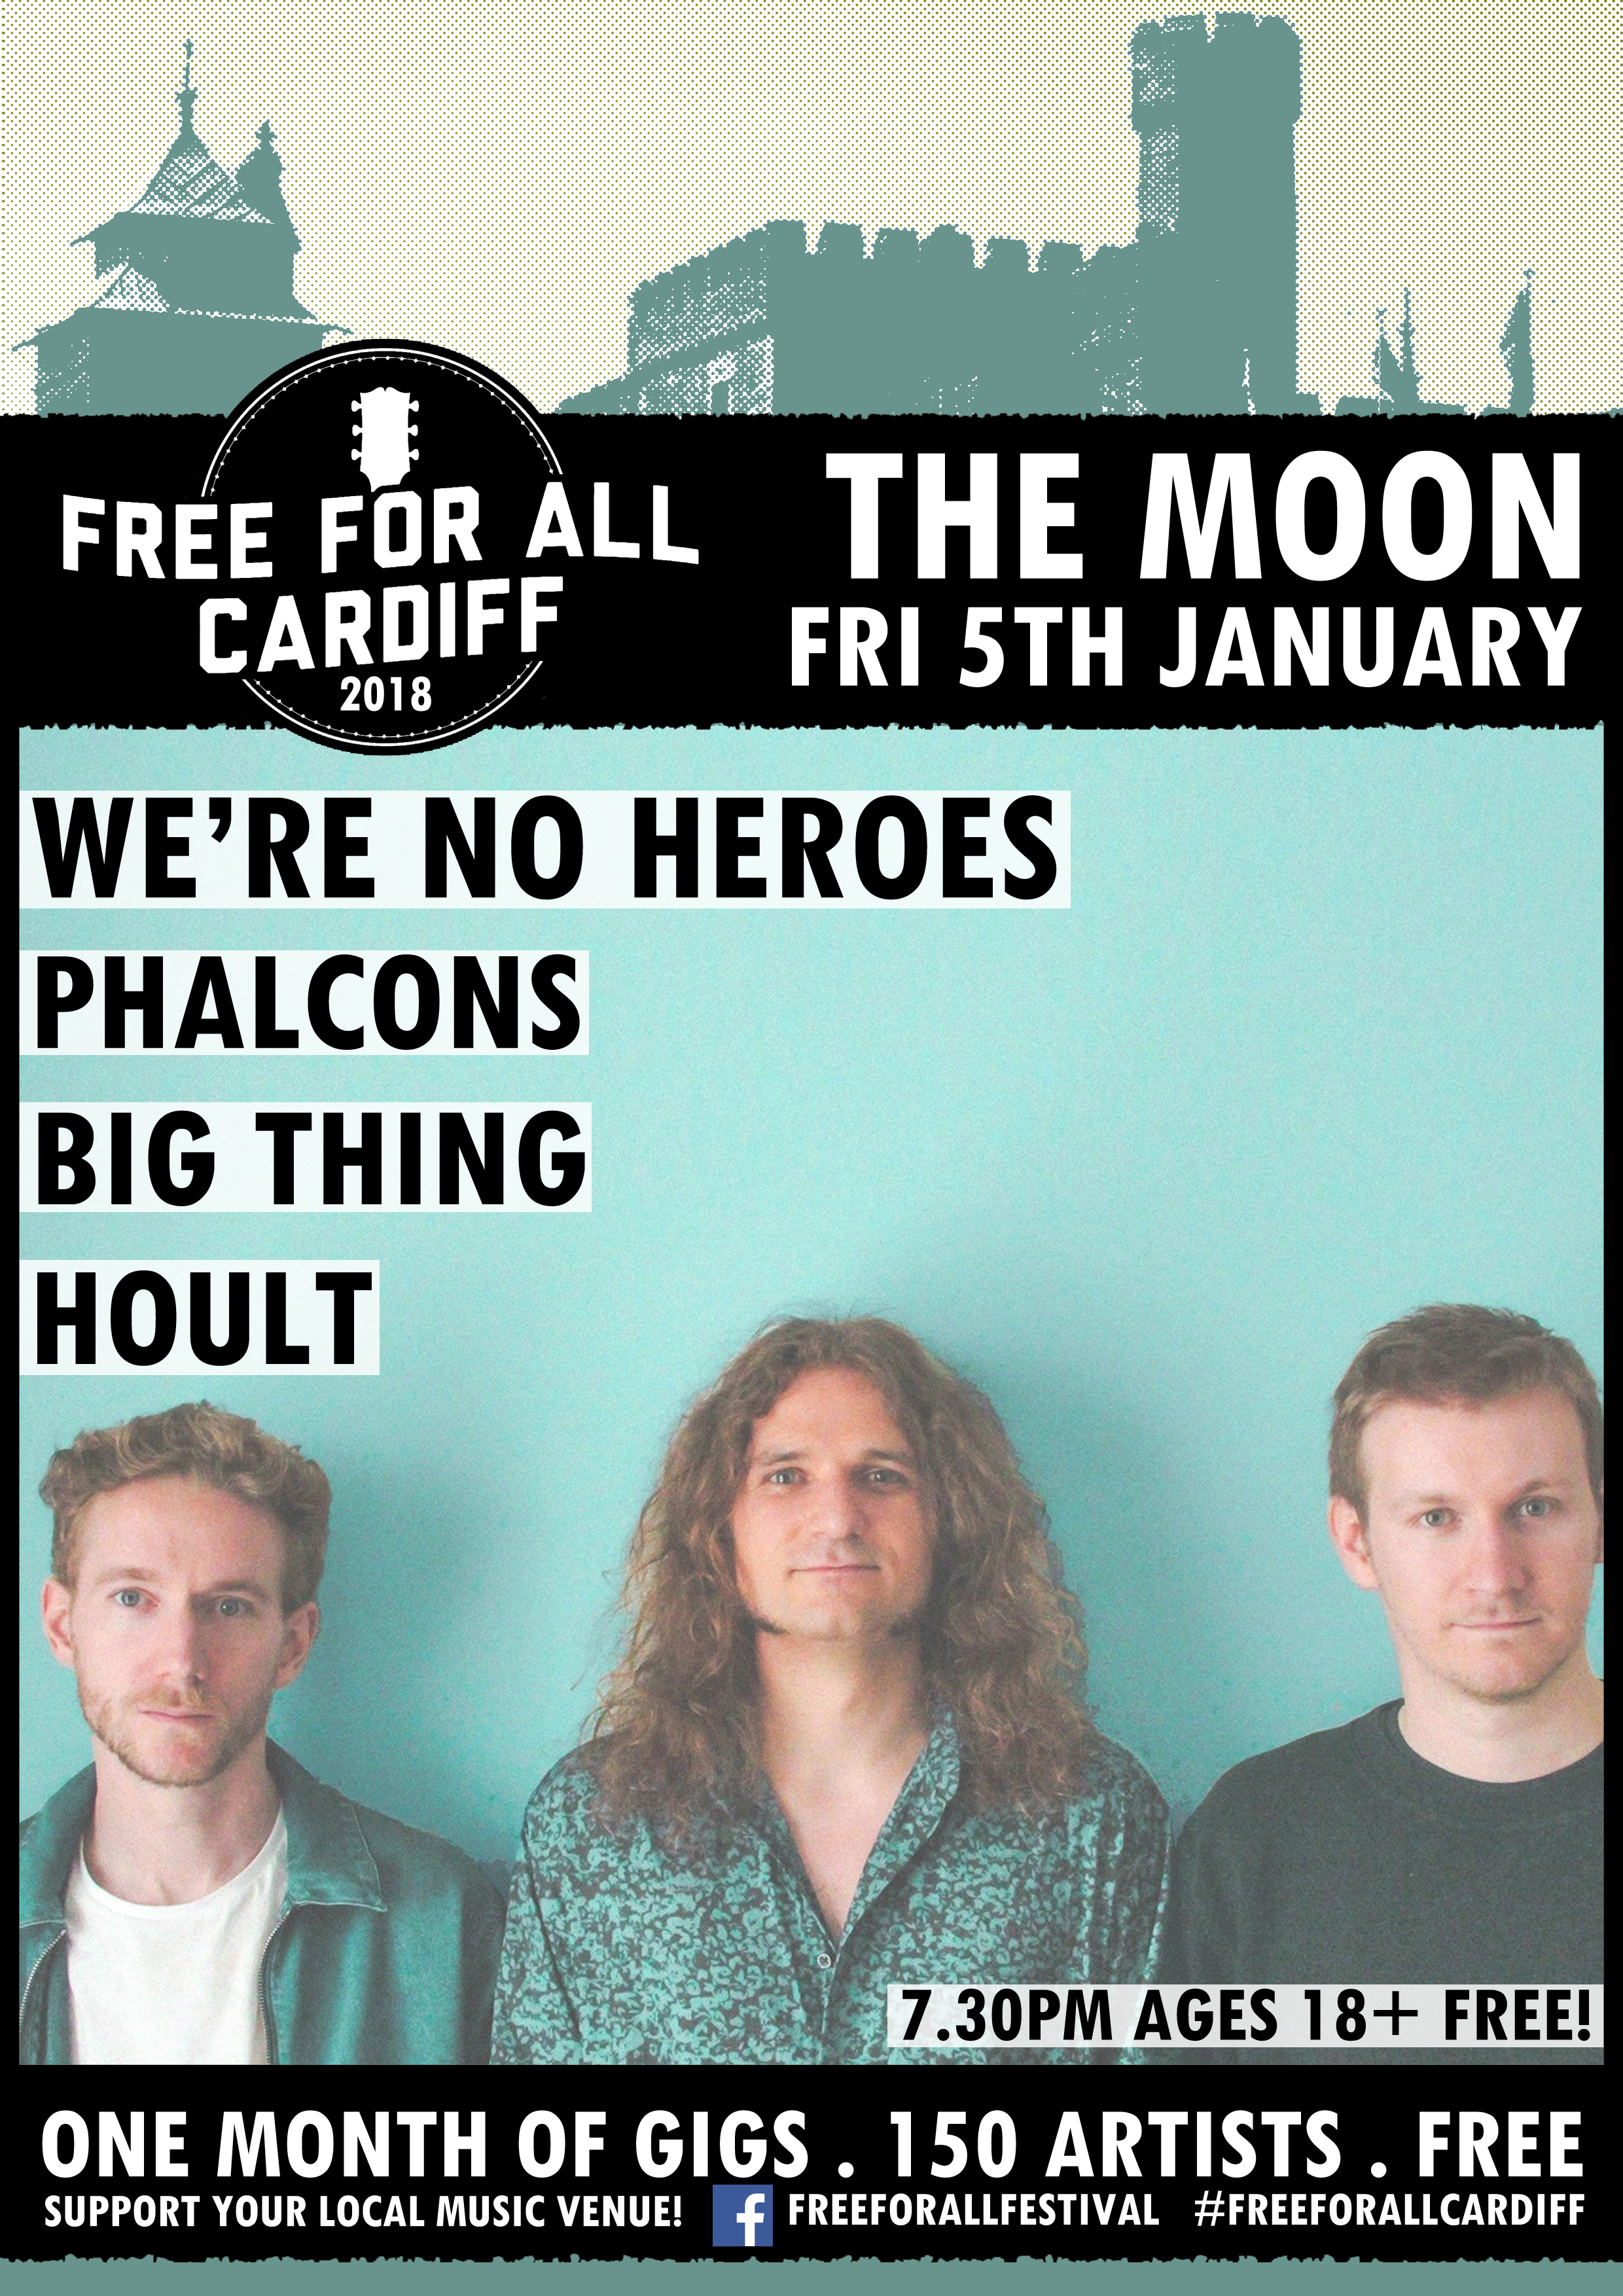 We're No Heroes - Free For All